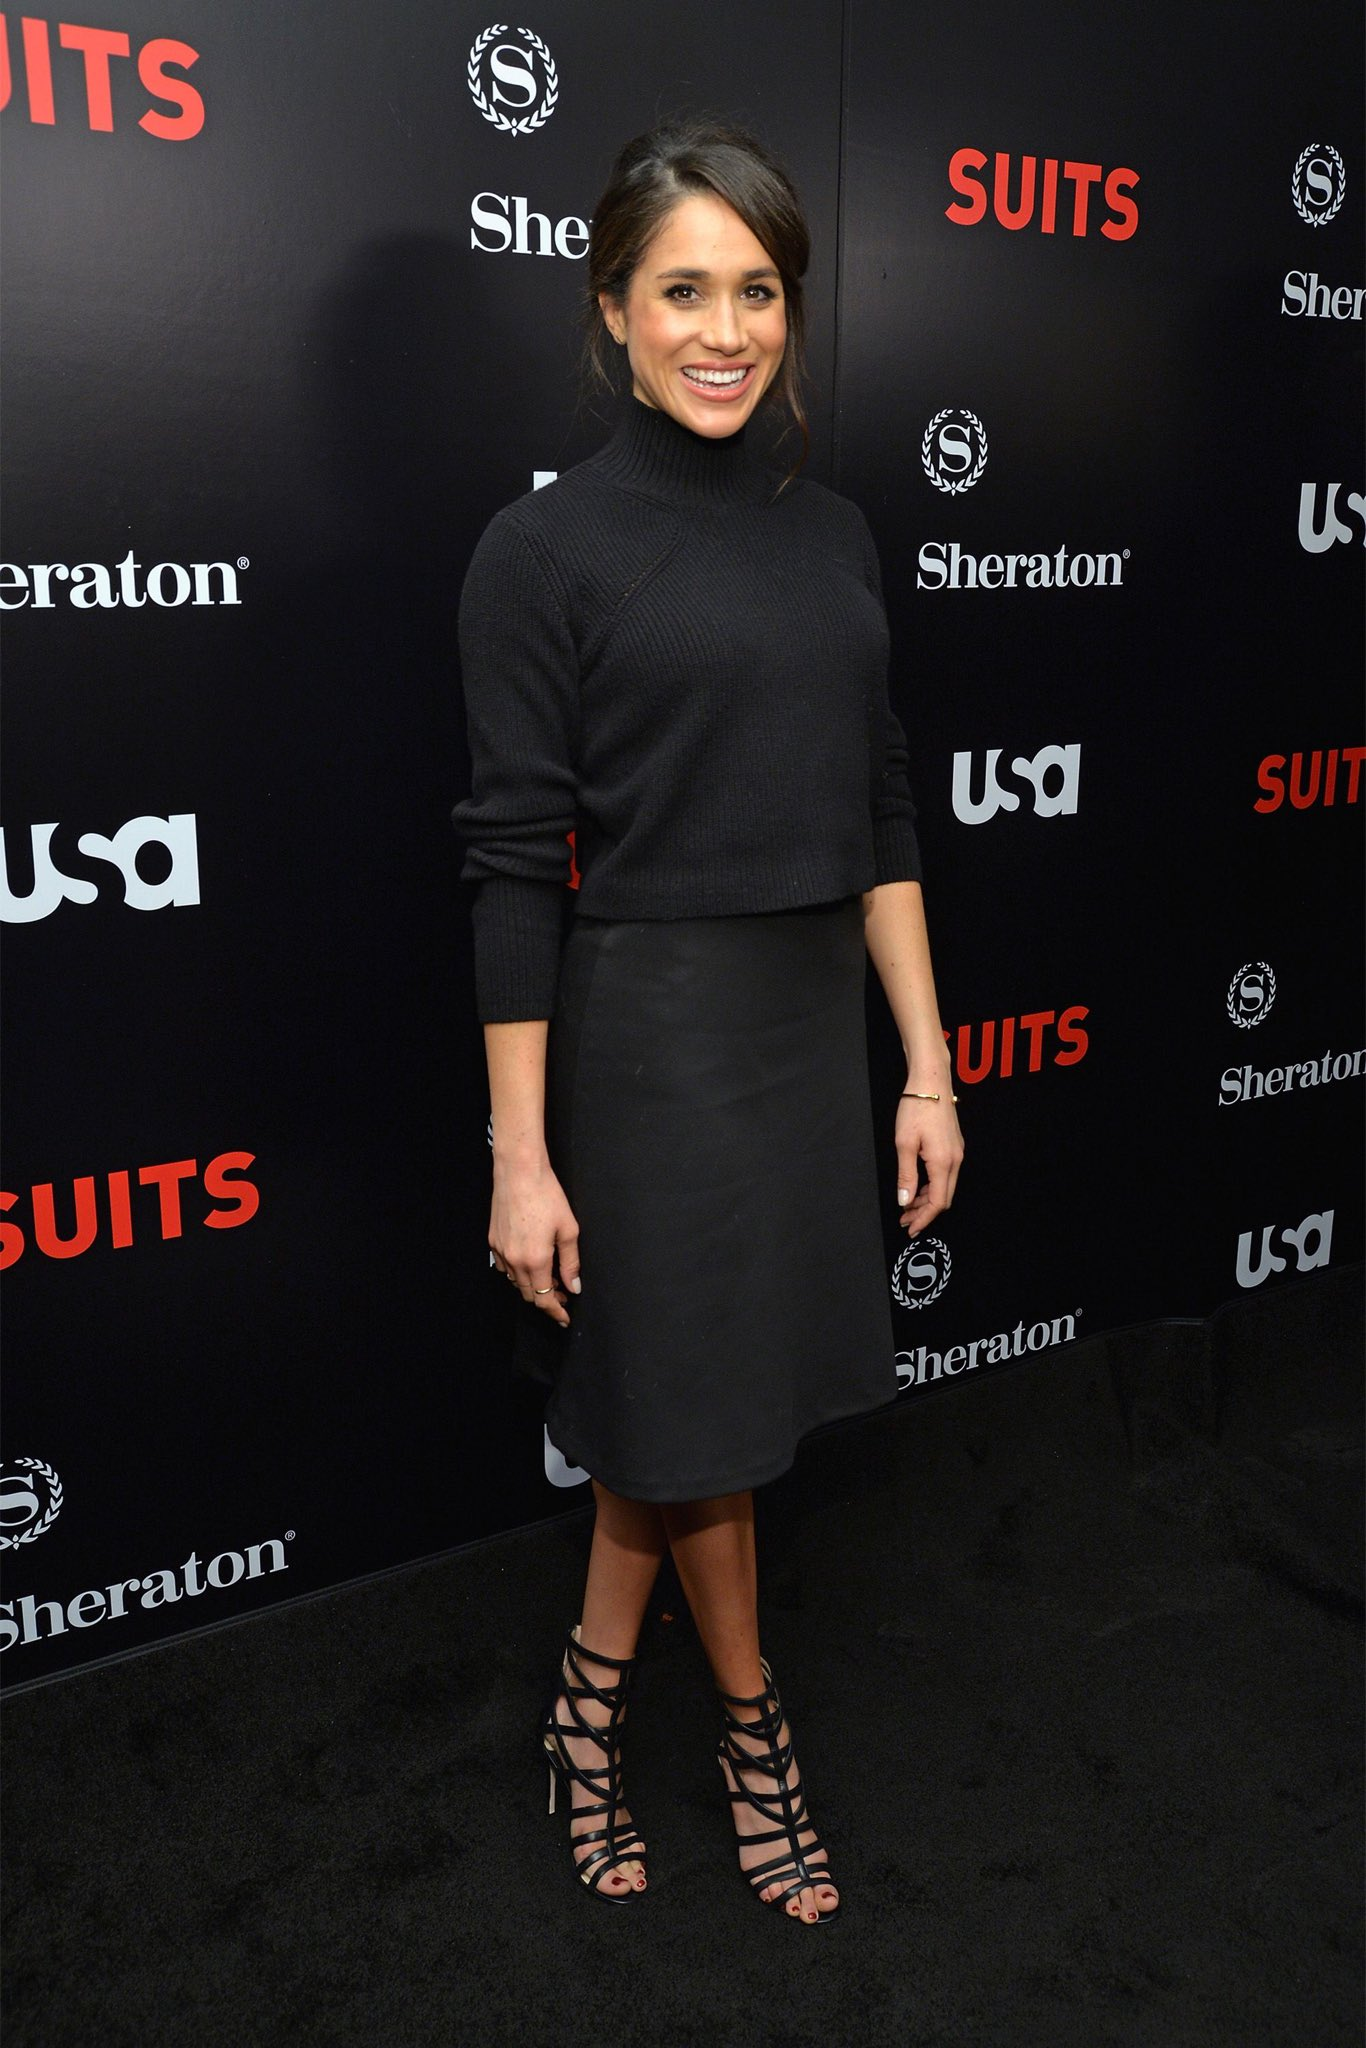 2c767a067 For Suits' Season 5 premiere, Meghan wore a Tiffany & Co. Gold bracelet  with her black sweater and skirt.